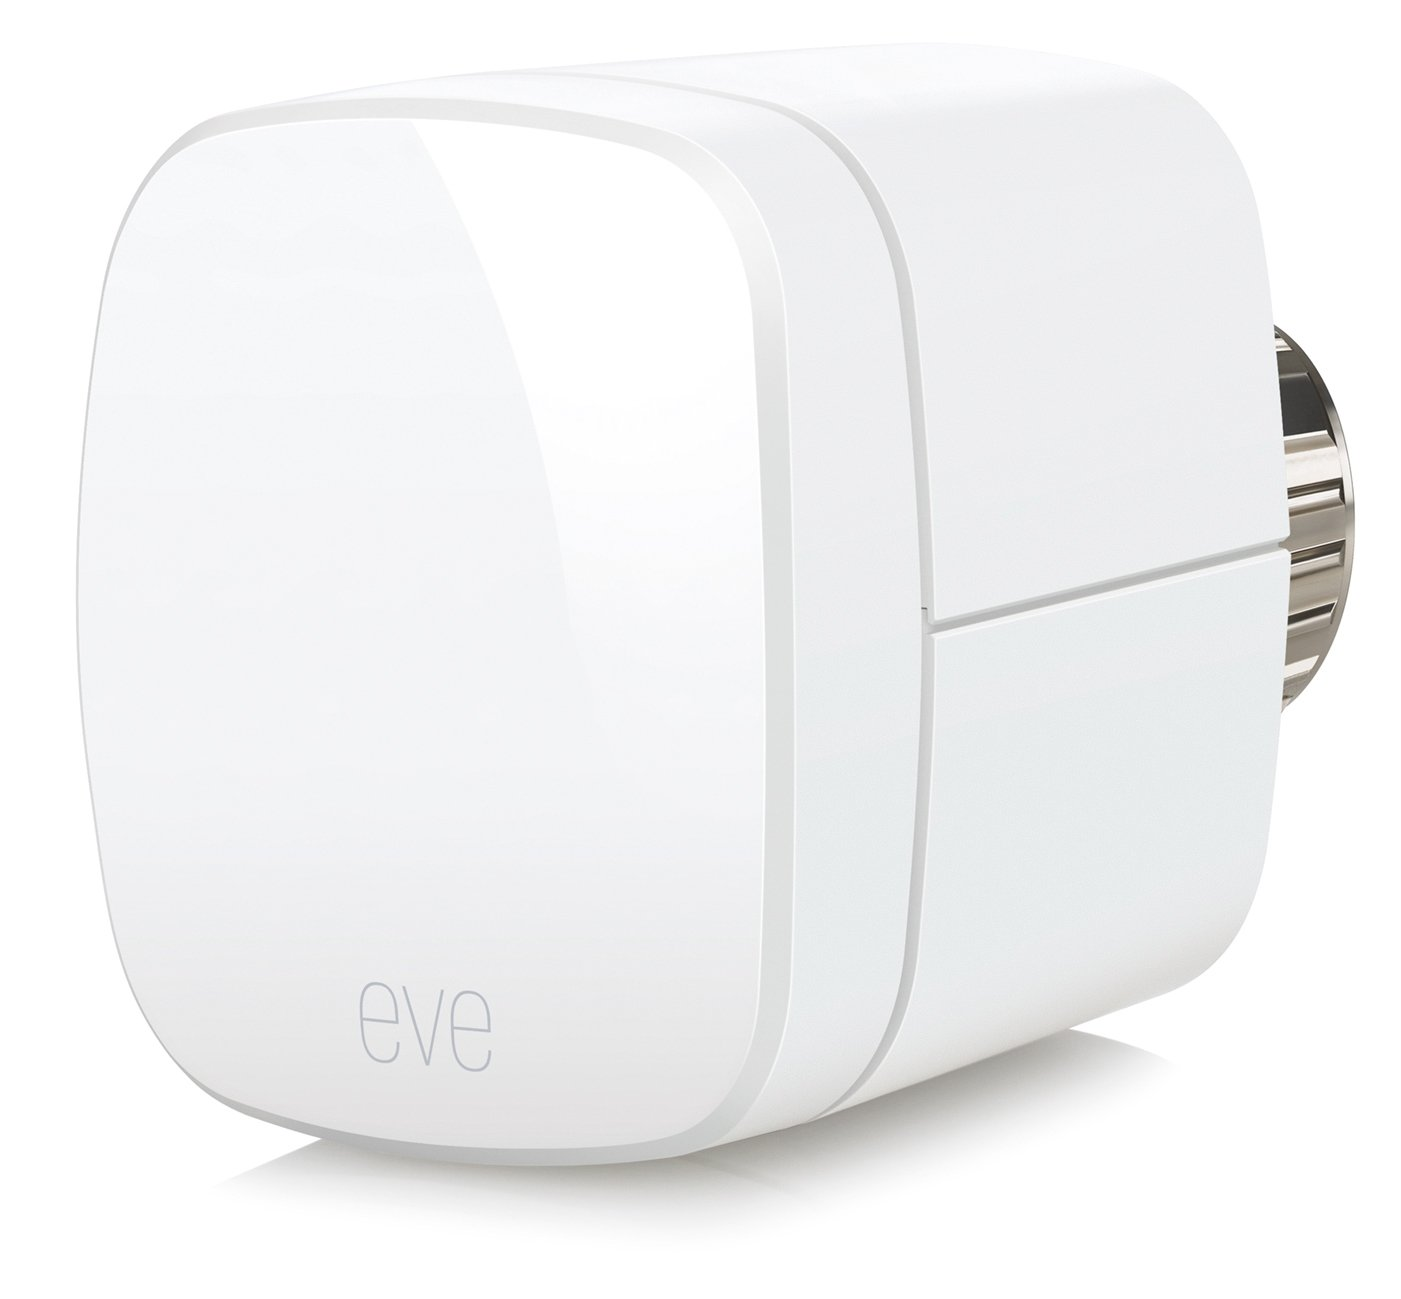 Elgato Eve Thermo (modèle précédent) – Vanne de radiateur thermostatique sans fil avec technologie HomeKit d'Apple, Bluetooth Low Energy